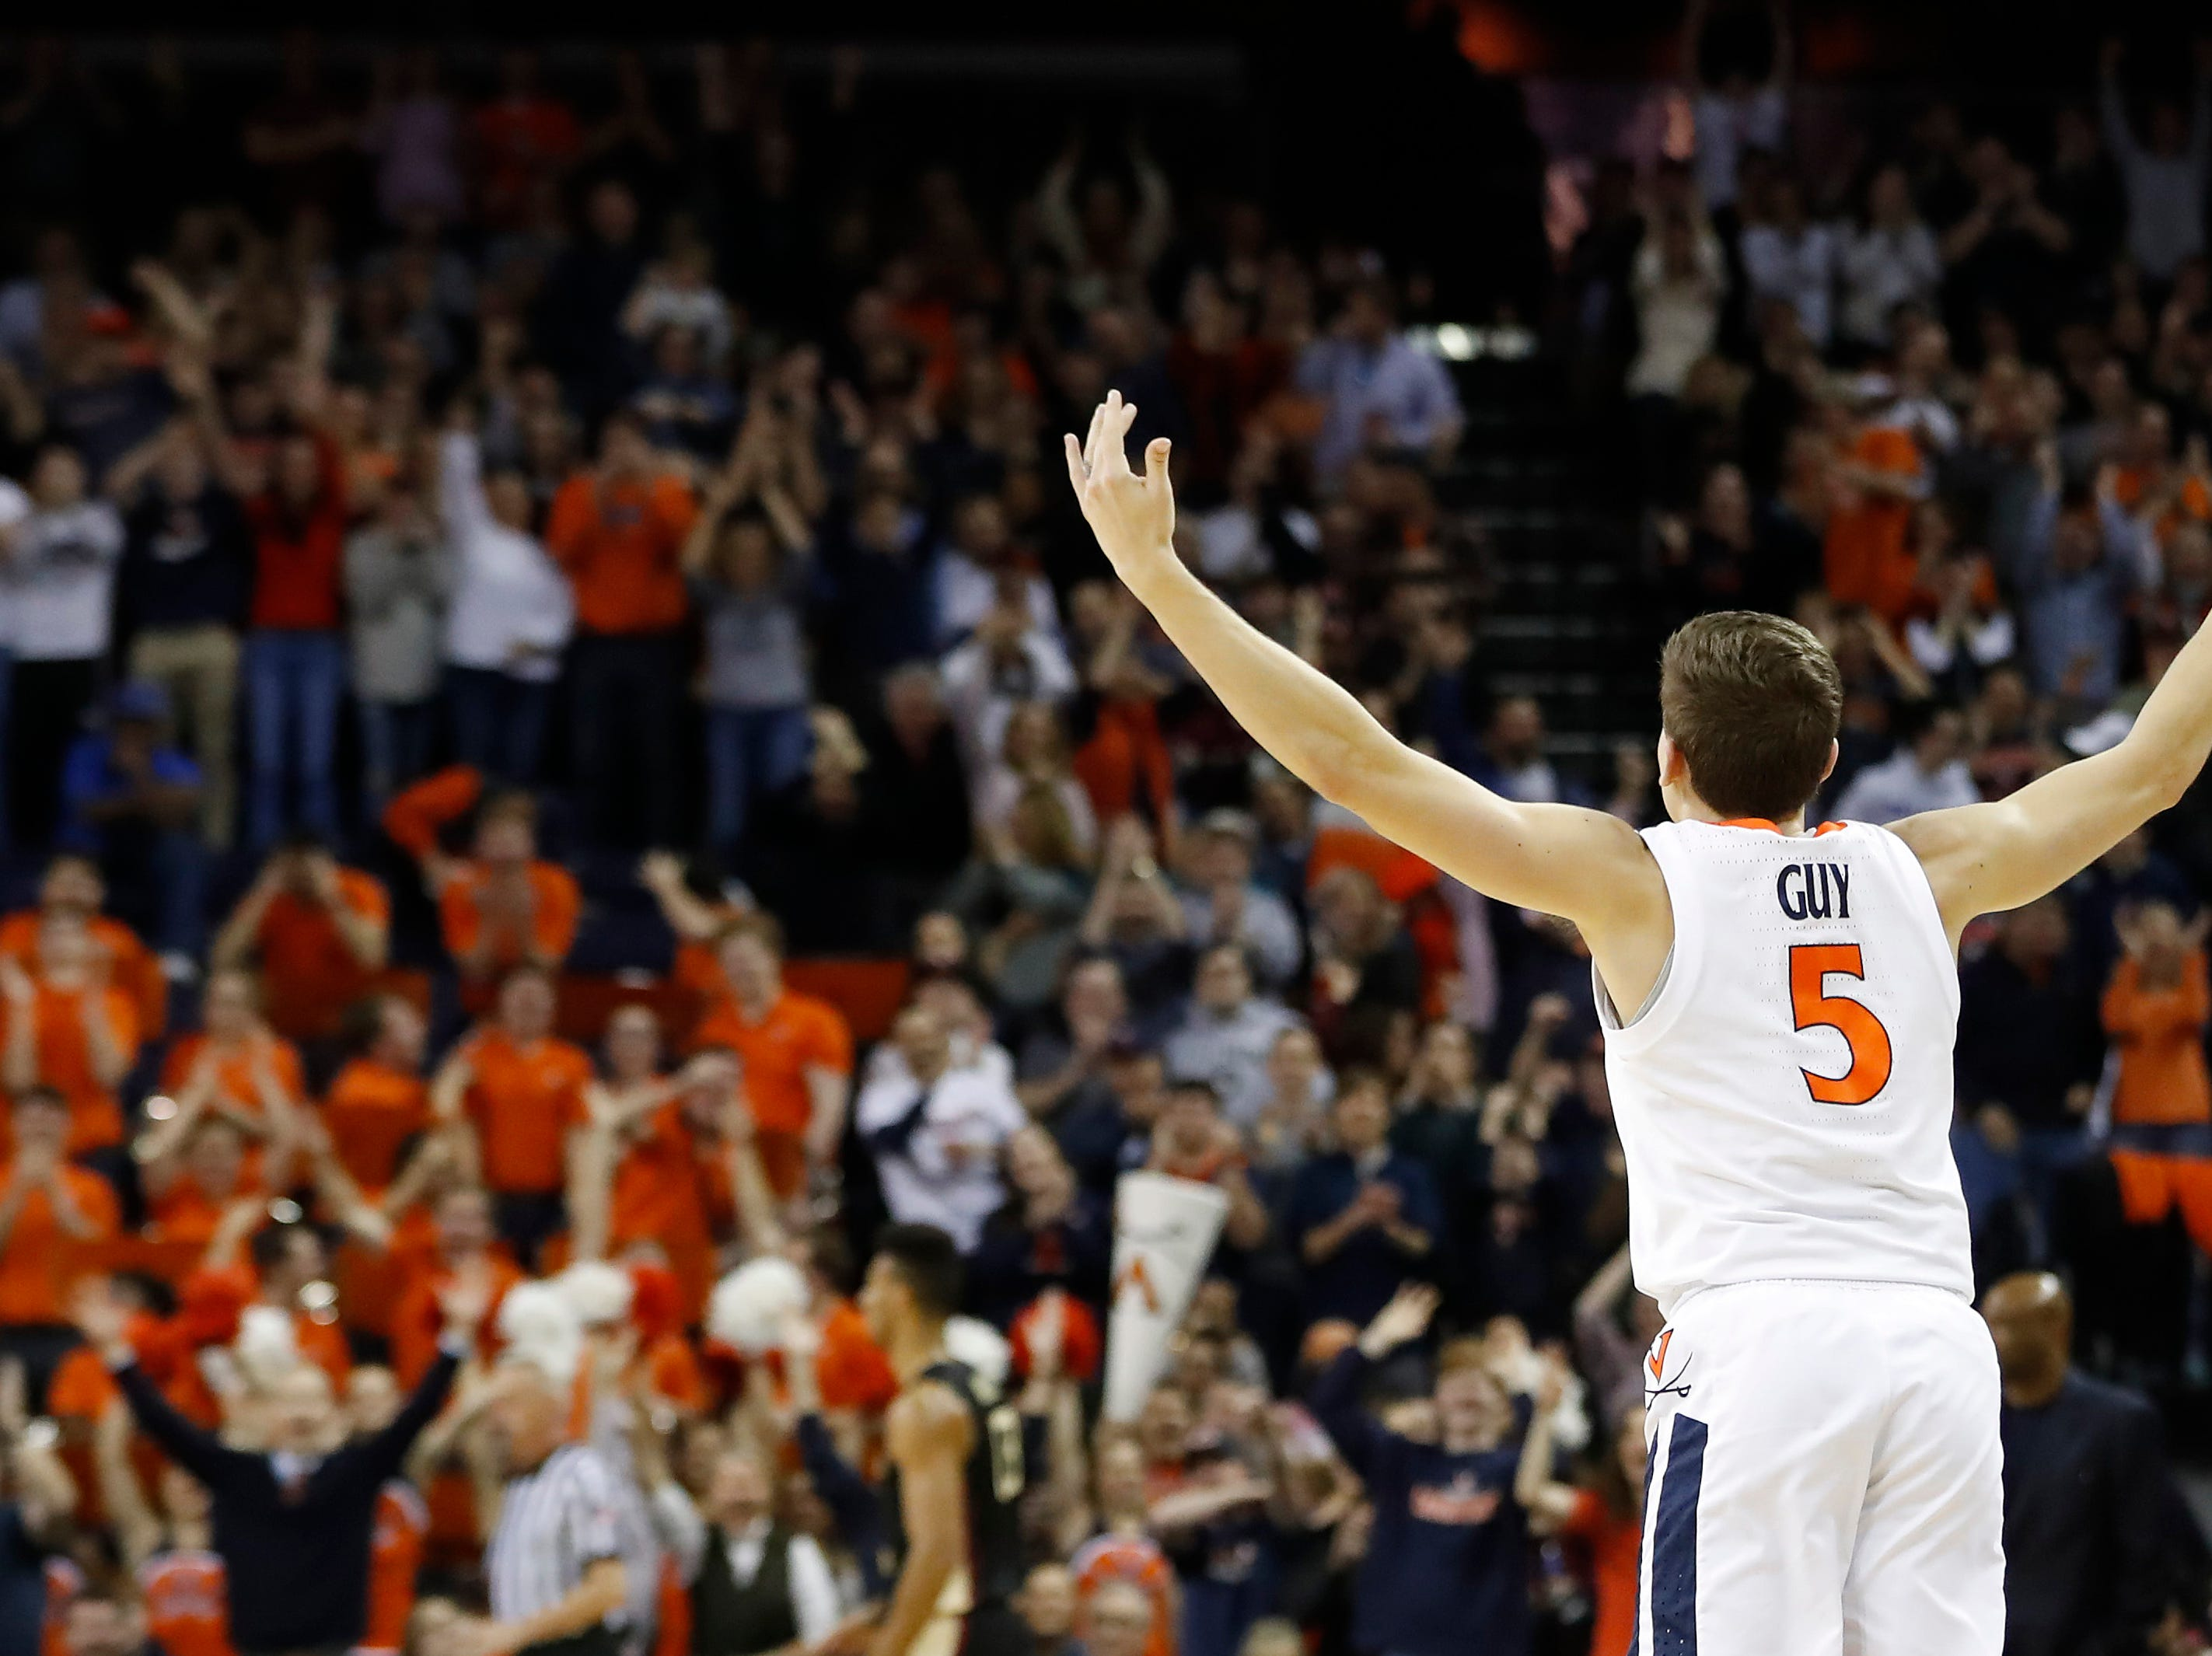 Jan 5, 2019; Charlottesville, VA, USA; Virginia Cavaliers guard Kyle Guy (5) reacts after making a three-point field goal against the Florida State Seminoles in the first half at John Paul Jones Arena. Mandatory Credit: Geoff Burke-USA TODAY Sports